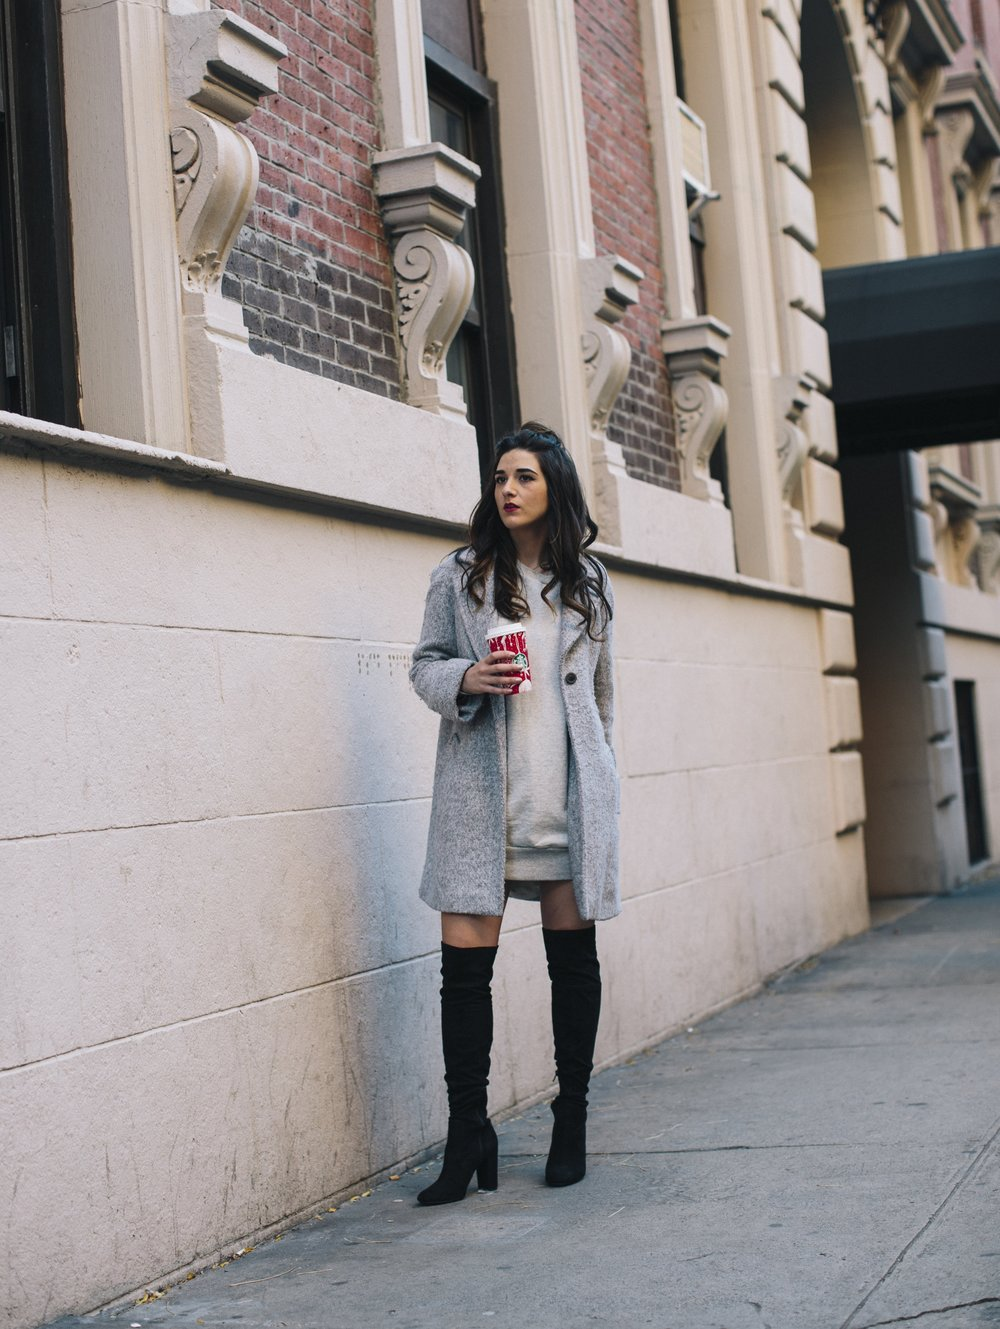 All Grey Look OTK Boots Why I Hate Fashion Week Esther Santer Fashion Blog Louboutins & Love NYC Street Style Blogger Outfit OOTD Trendy Sweatshirt Dress Topknot Coat Women Girl Shoes Shopping Zara Accessories Beauty Monochome Clothes Wear Winter Look.jpg